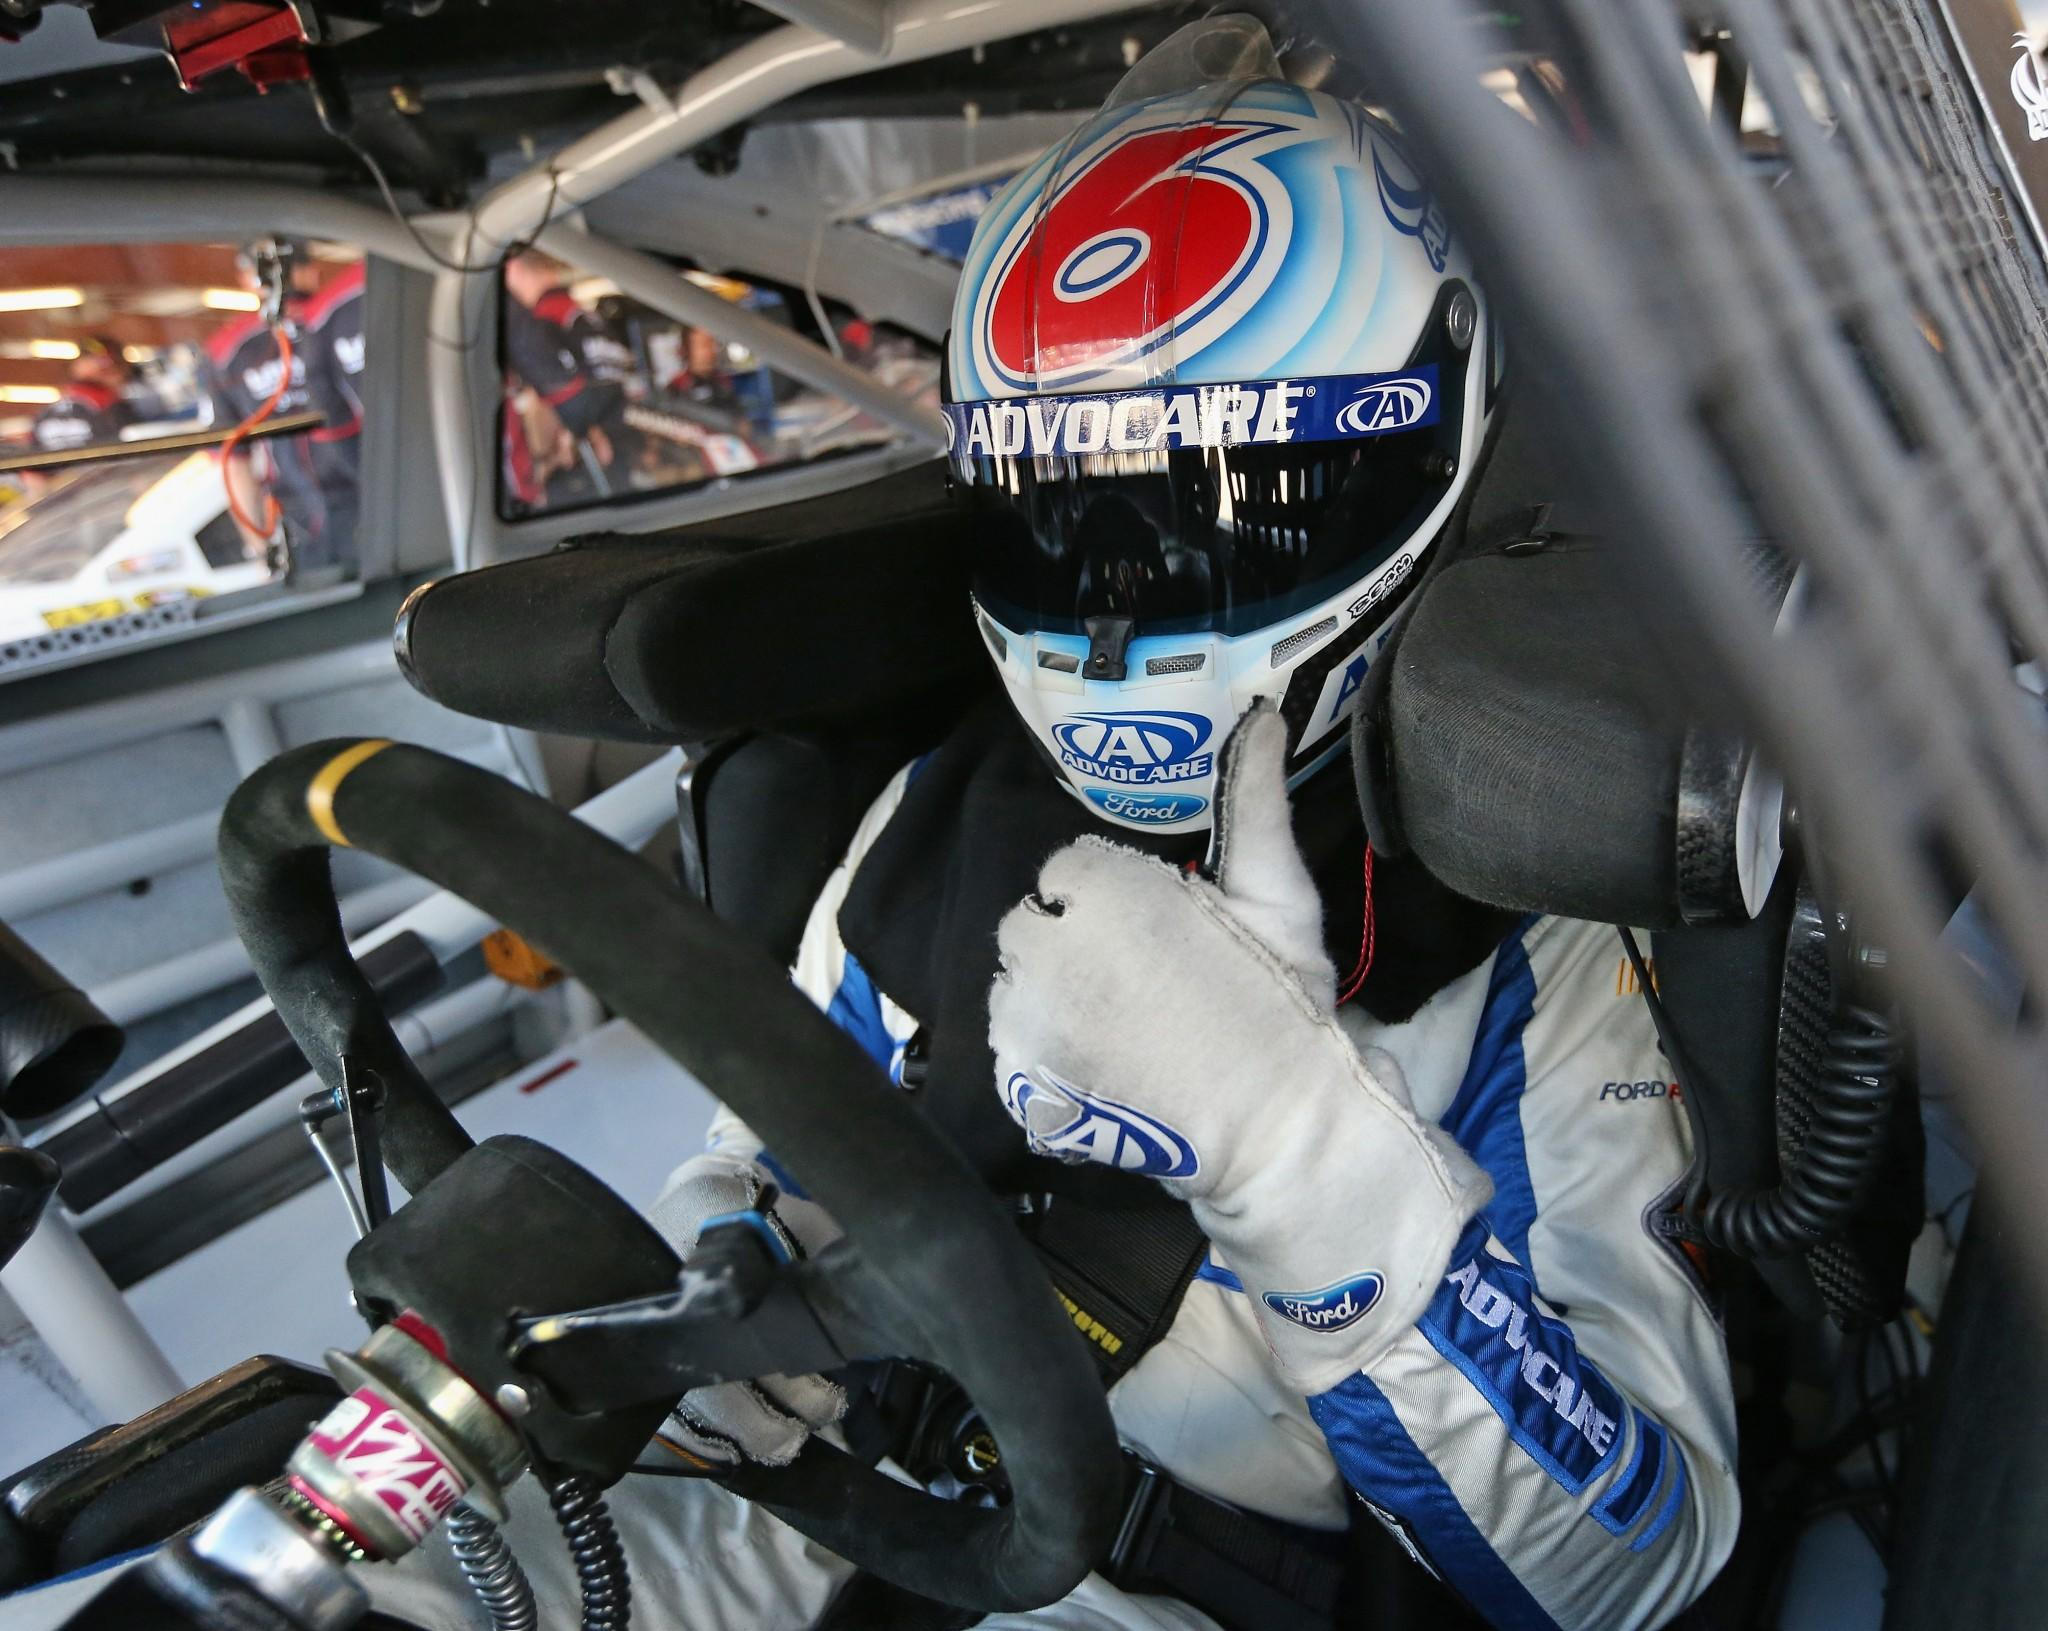 Trevor Bayne signs 3 year contract extension with Roush Fenway Racing